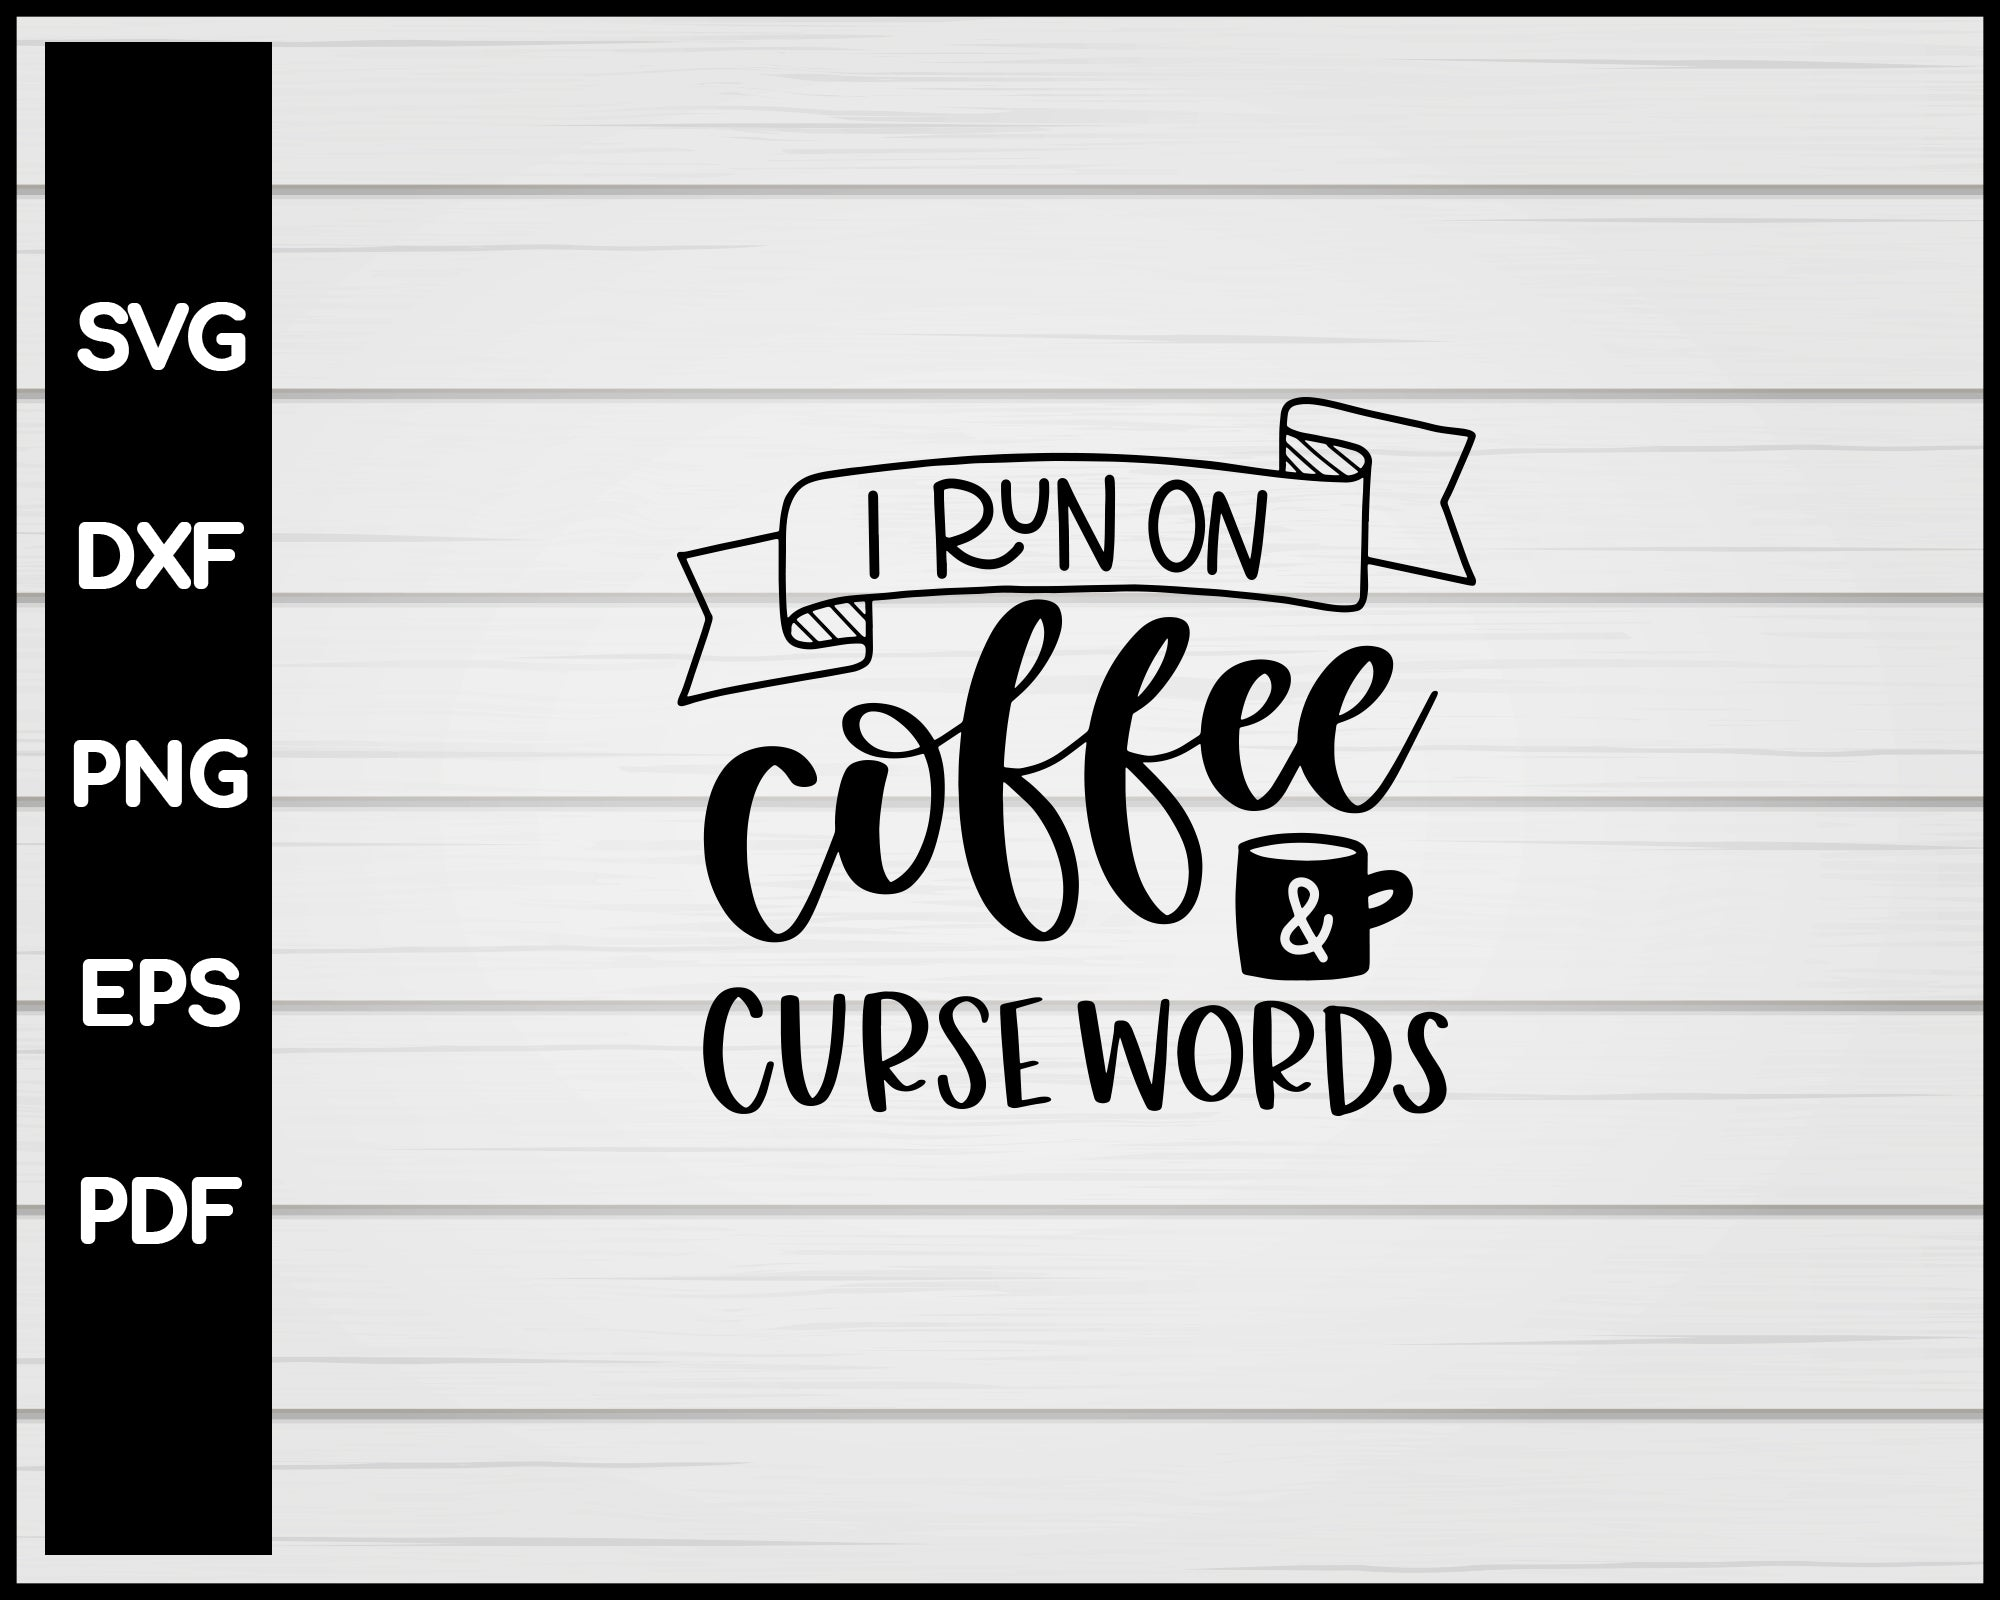 I Run On Coffee Curse Words Nurse svg Cut File For Cricut Silhouette eps png dxf Printable Files